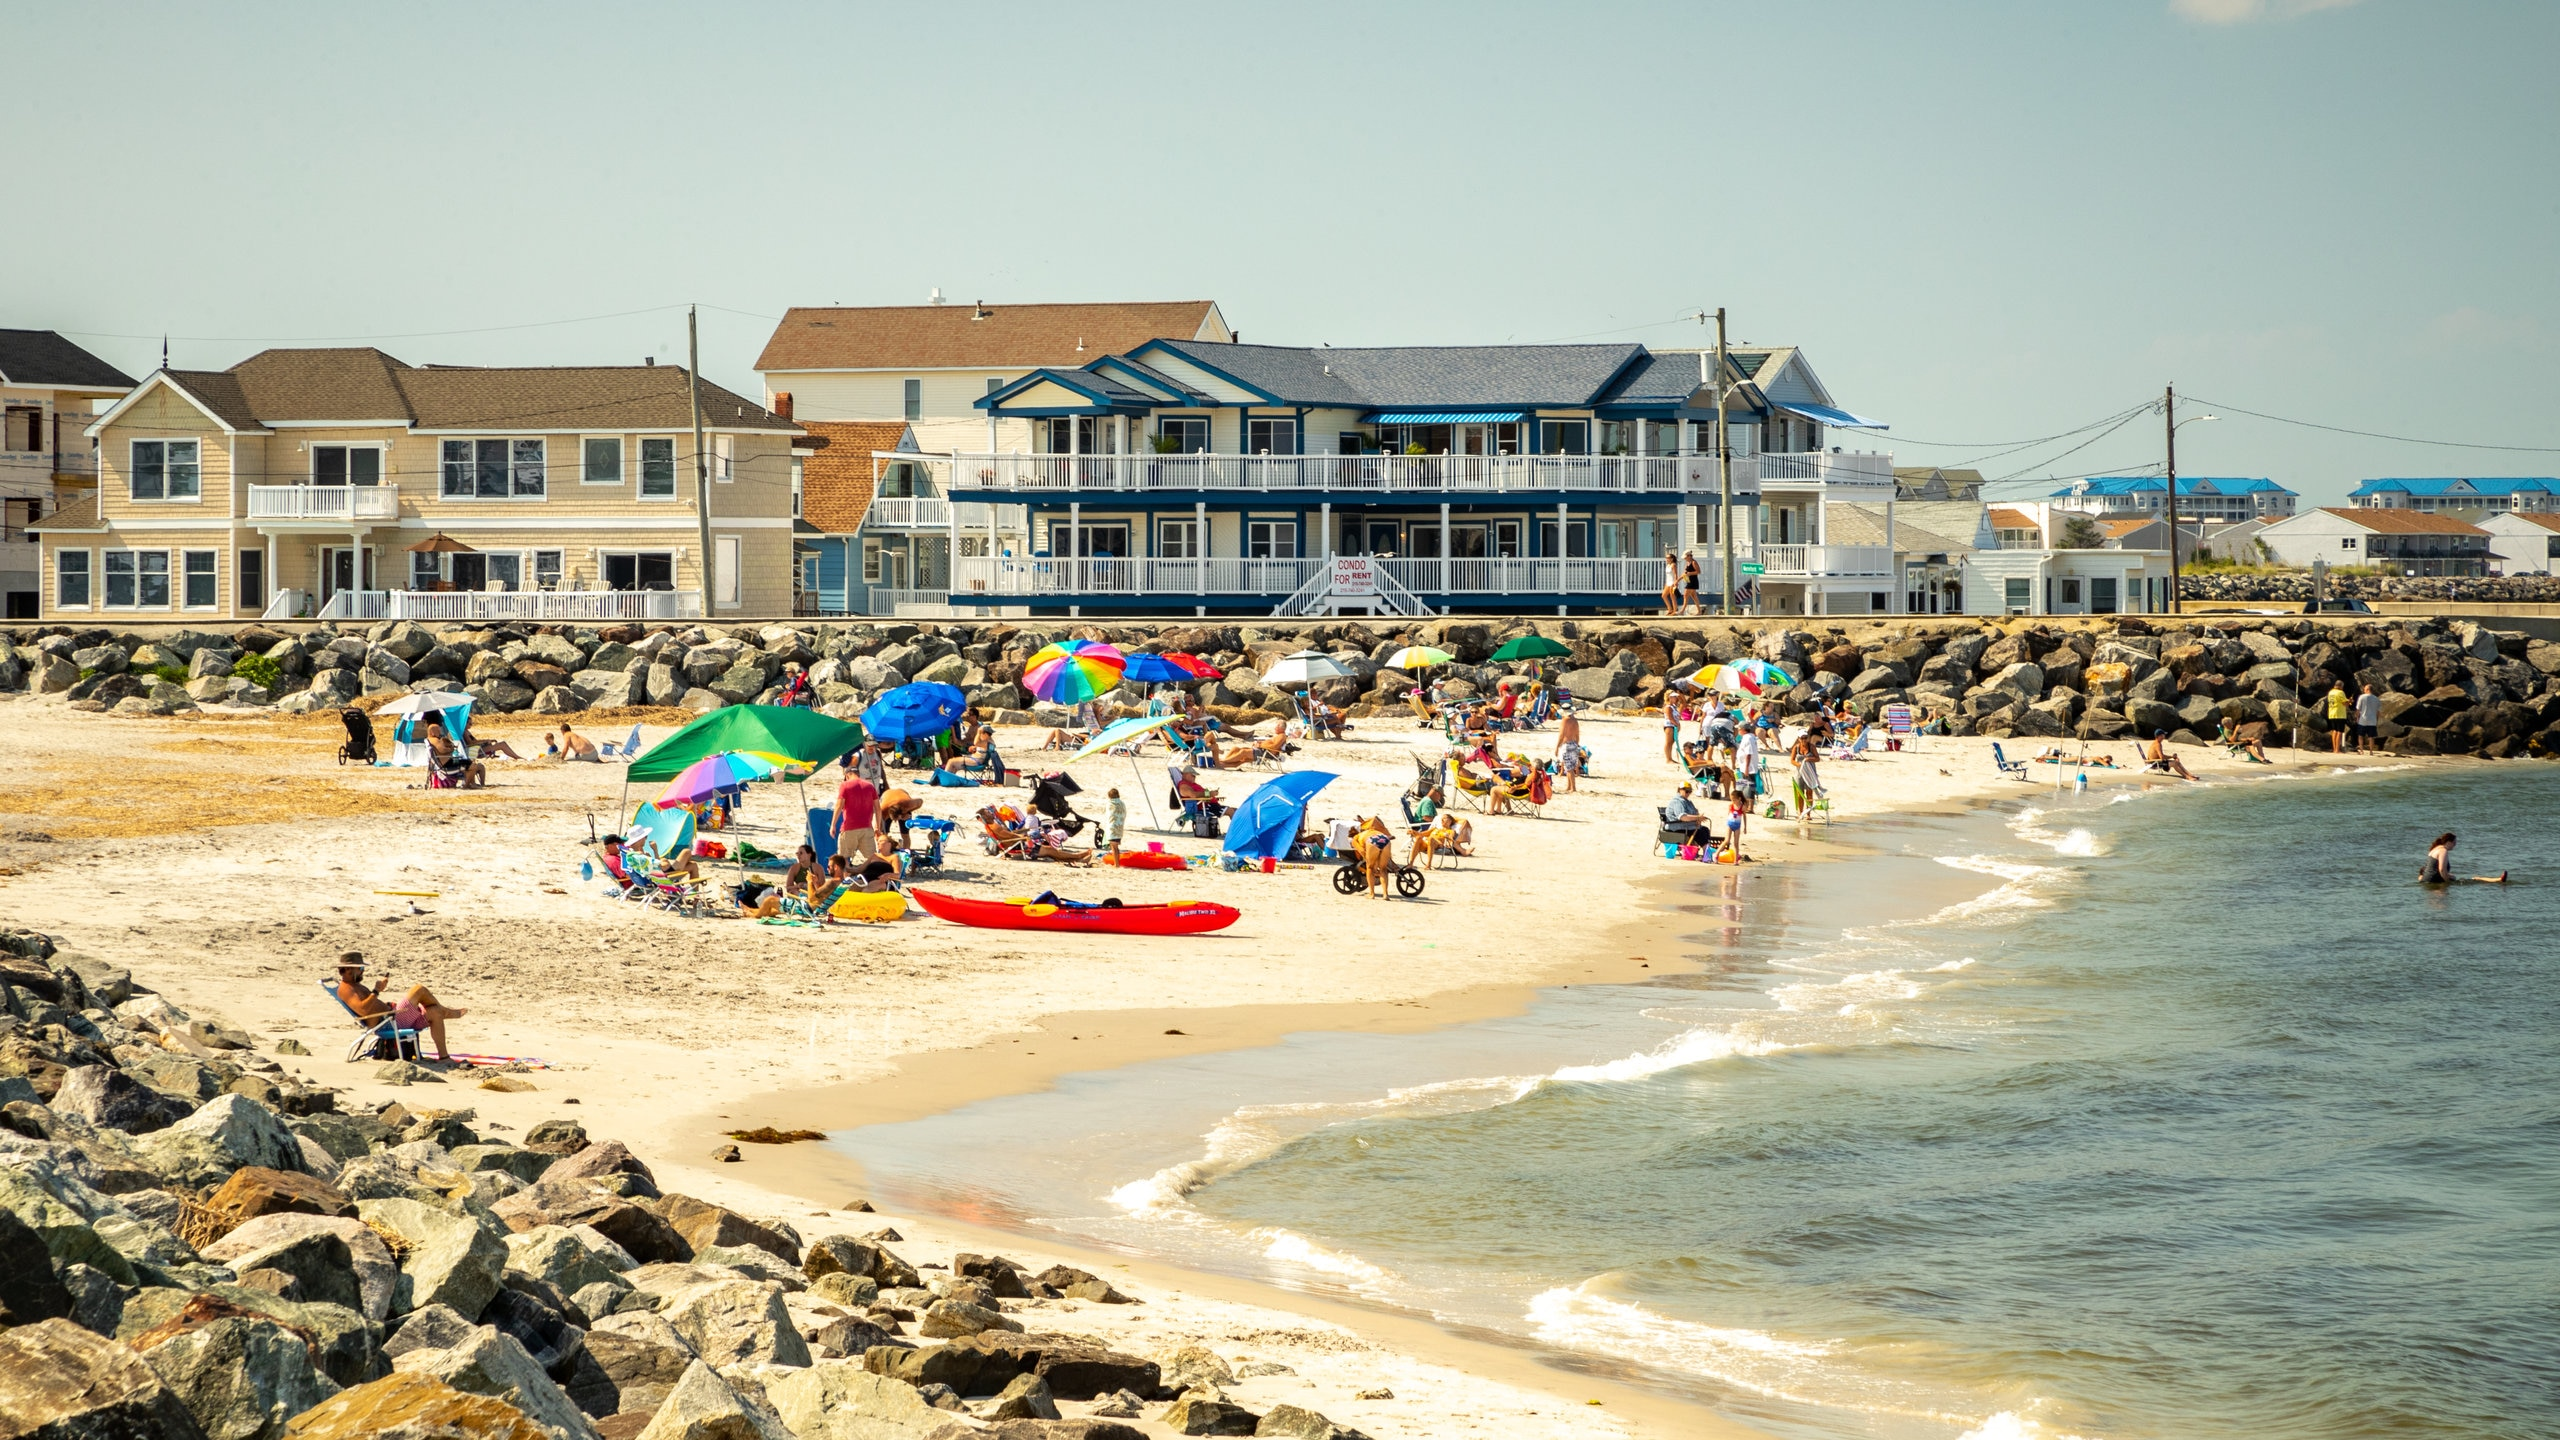 Top Hotels In North Wildwood Nj From 69 Free Cancellation On Select Hotels Expedia